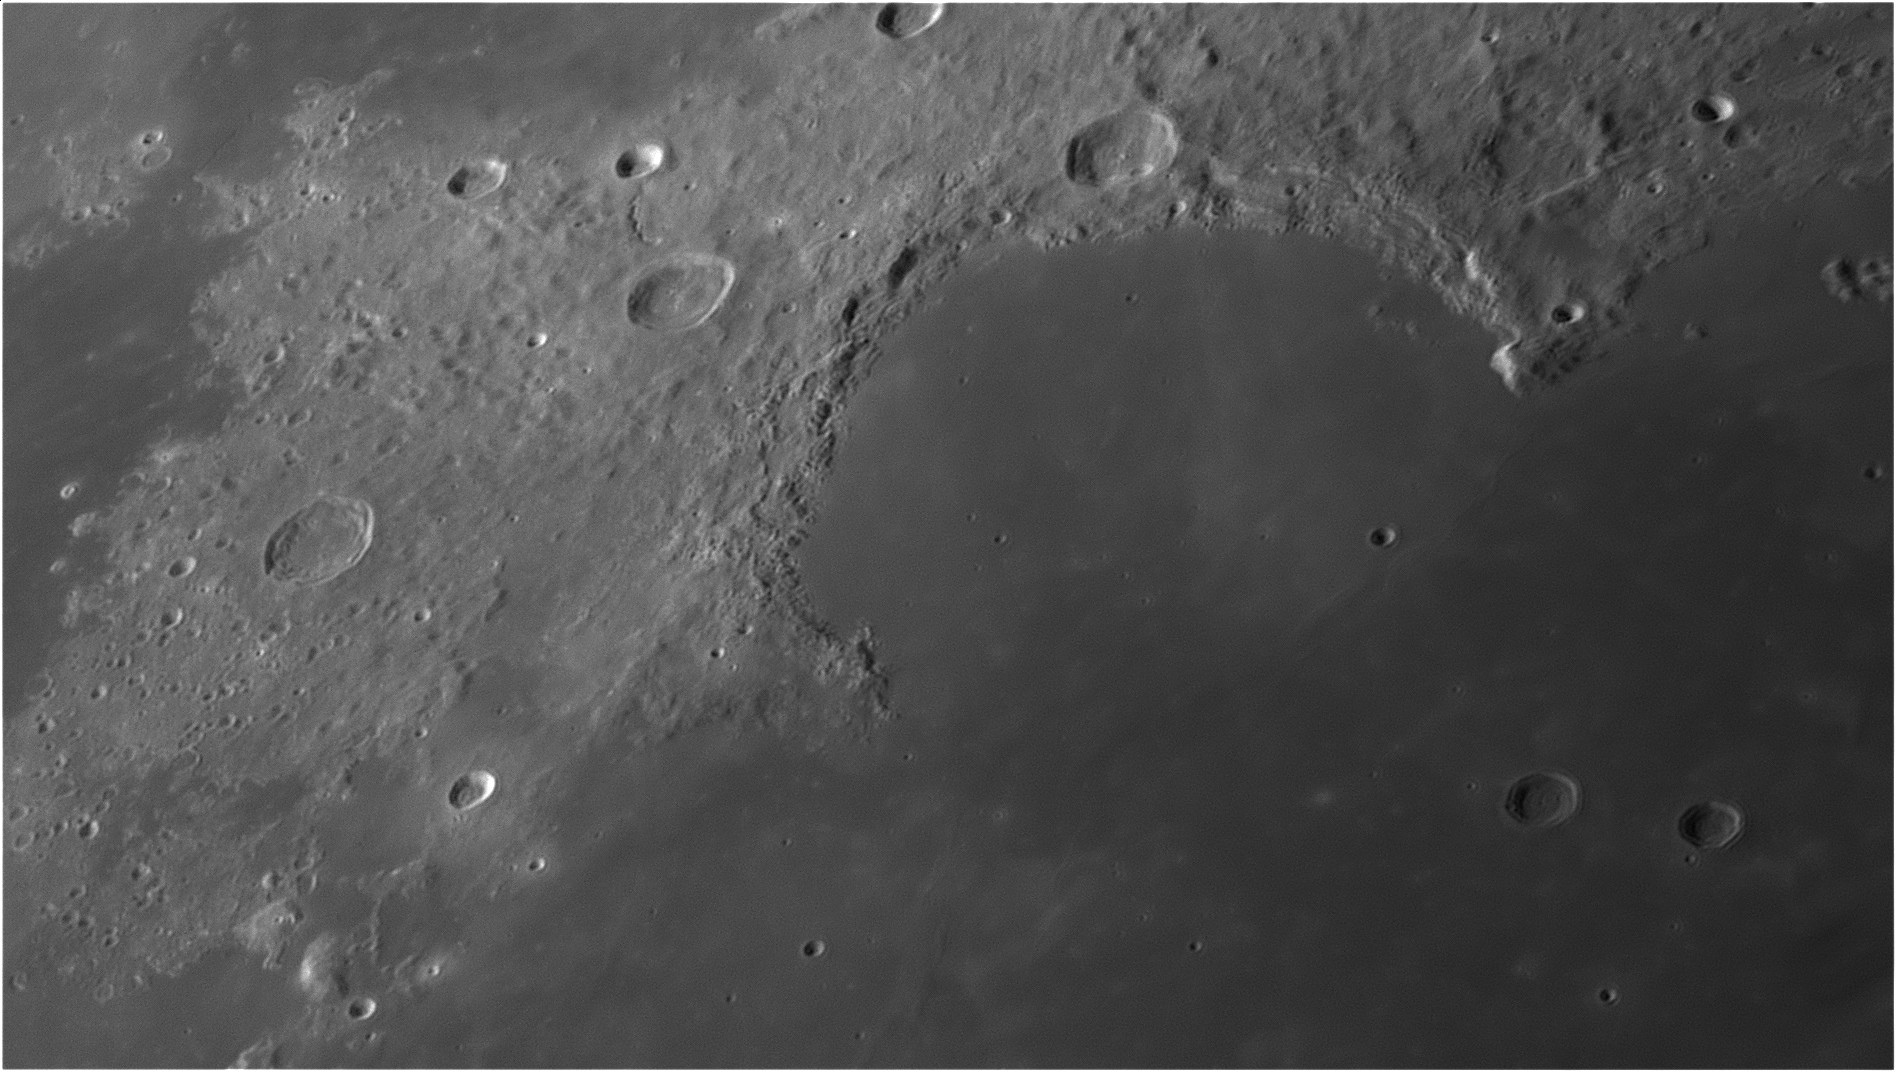 5d9646d892213_Moon_062852_210919_ZWOASI290MM_Rouge_23A_AS_P35_lapl6_ap862.jpg.fd856ea867bcfe12246db0bde58d8413.jpg